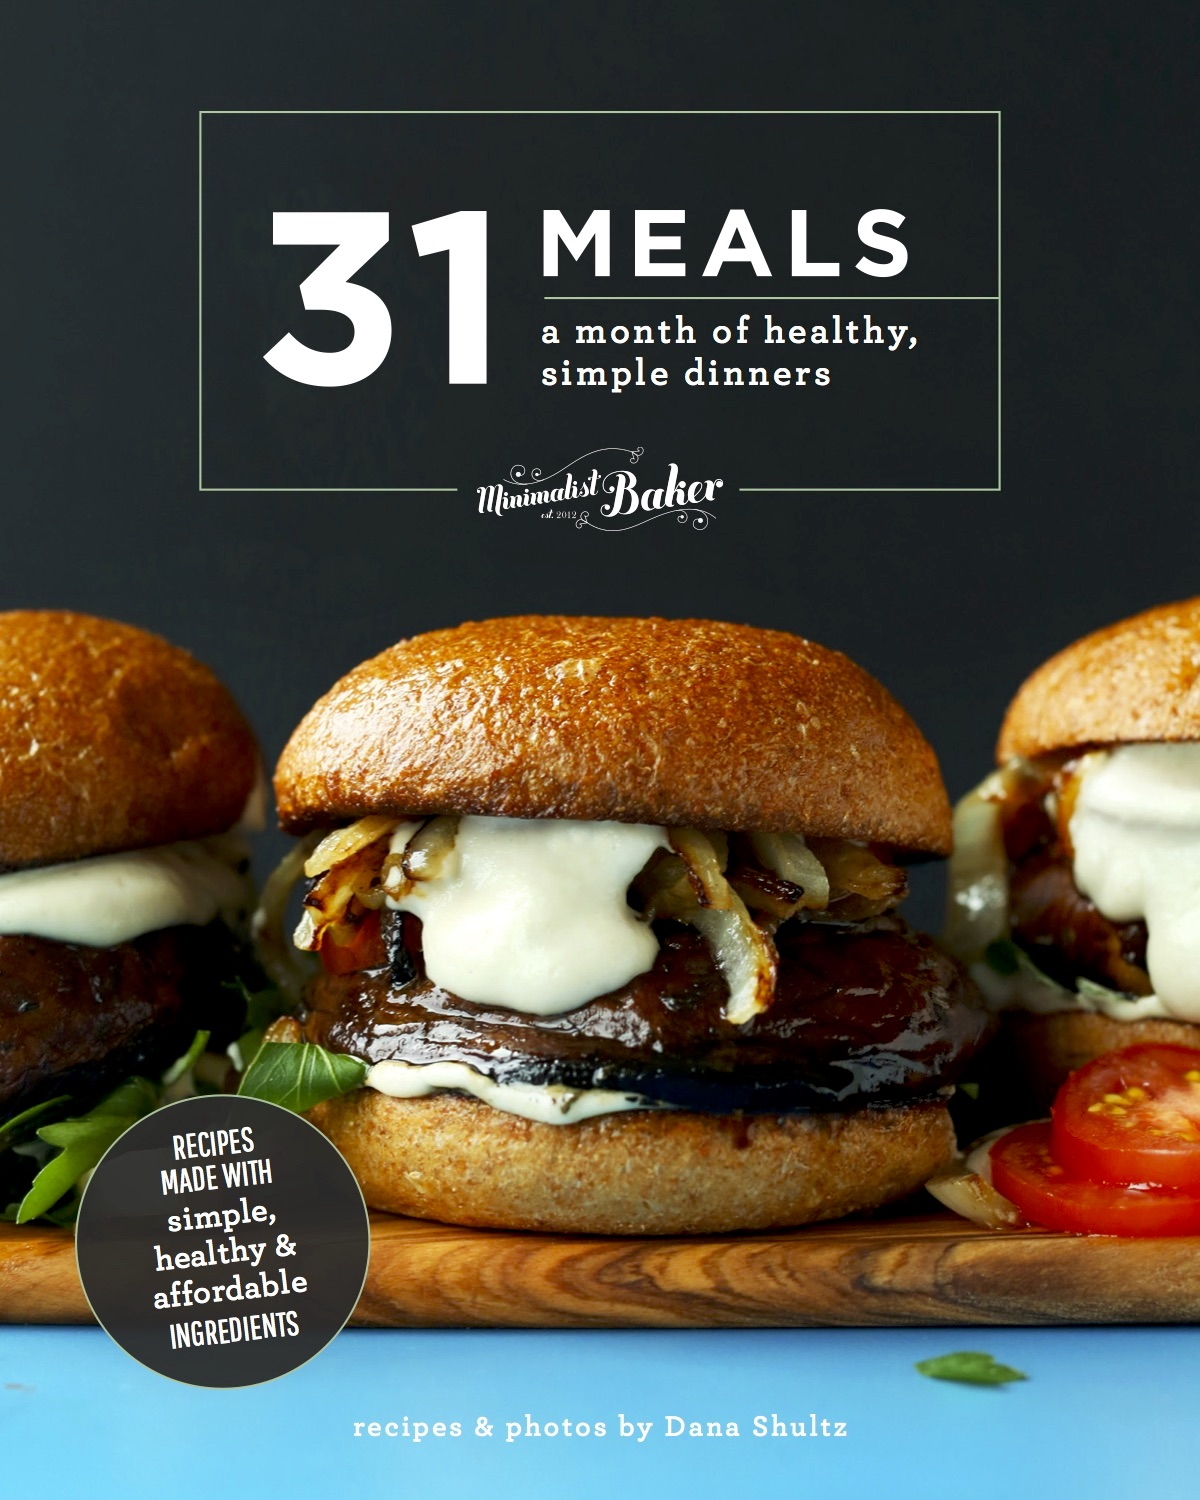 31 meals cookbook a month of healthy simple dinners minimalist 31 meals cookbook a month of healthy simple dinners fandeluxe Image collections